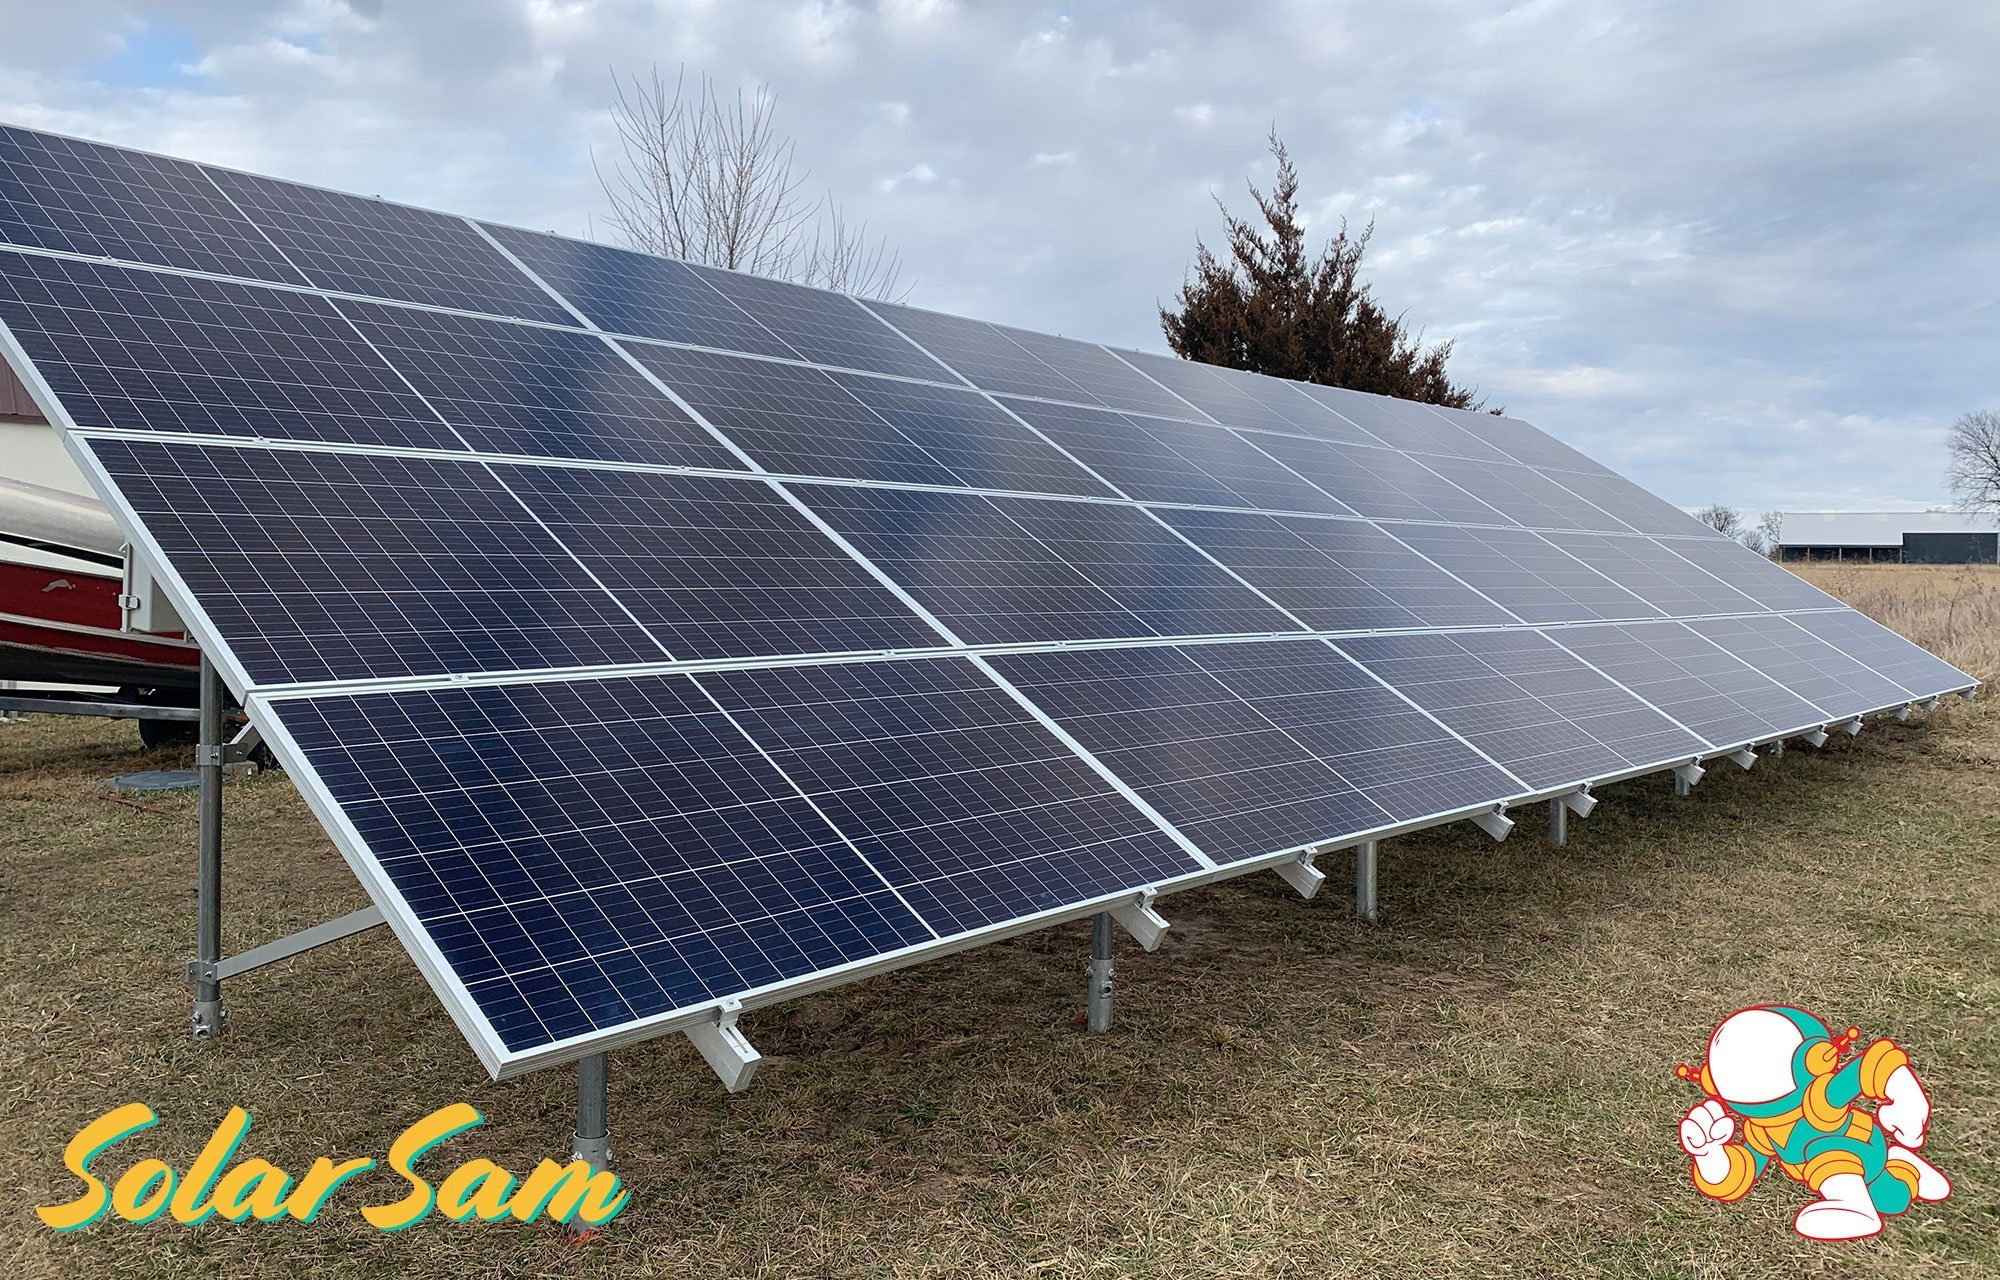 Boone Lee 5 Centralia MO Solar Panels Residential Home Installation by Solar Sam Professional Solar Panel Installers Monocrystalline Enphase Microinverters Sunmodo Ground Mount